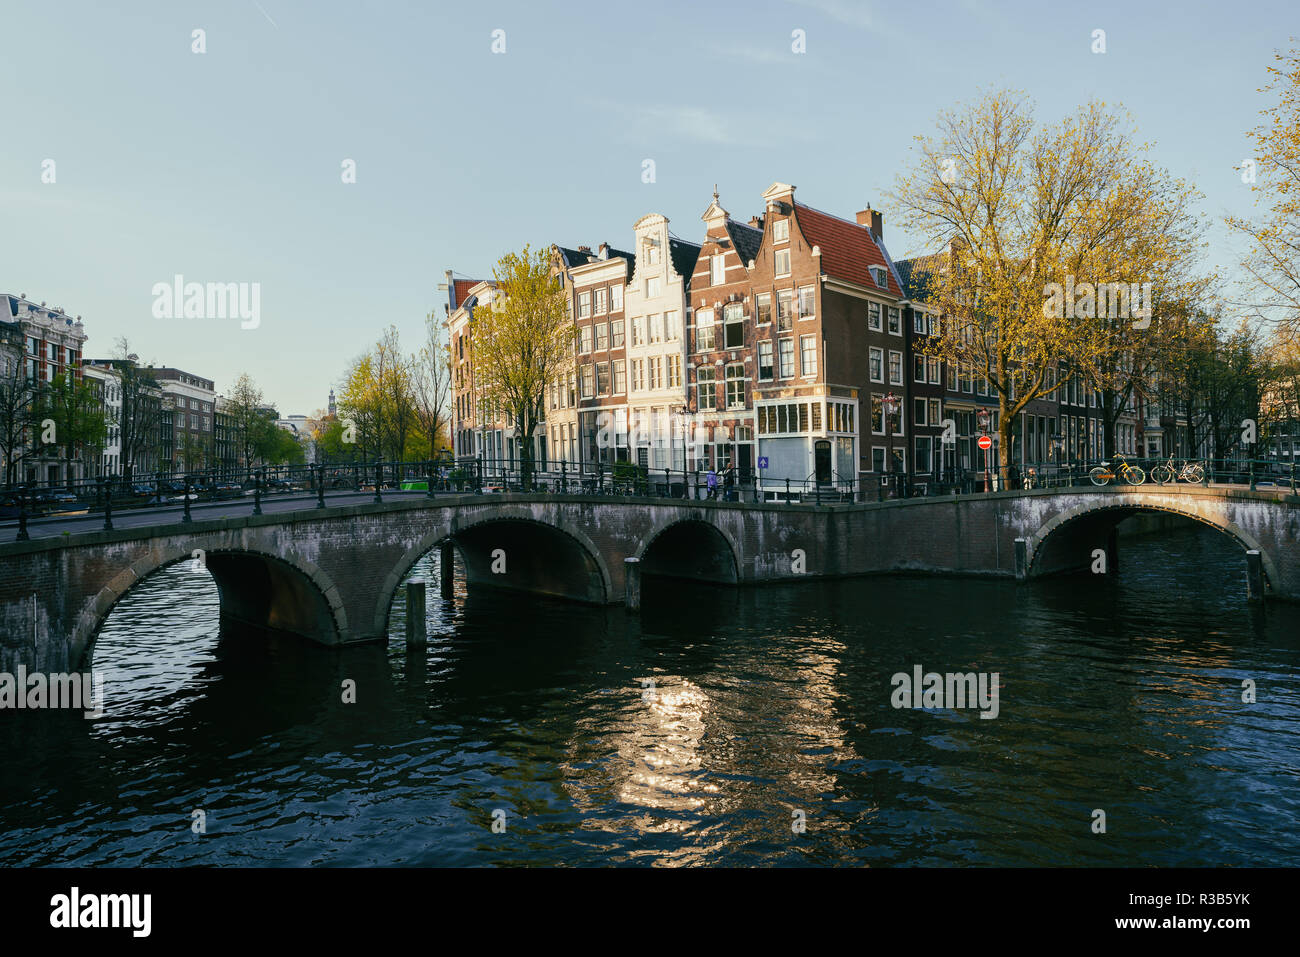 Netherlands traditional houses and Amsterdam canal in Amsterdam ,Netherlands. Vintage tone. - Stock Image